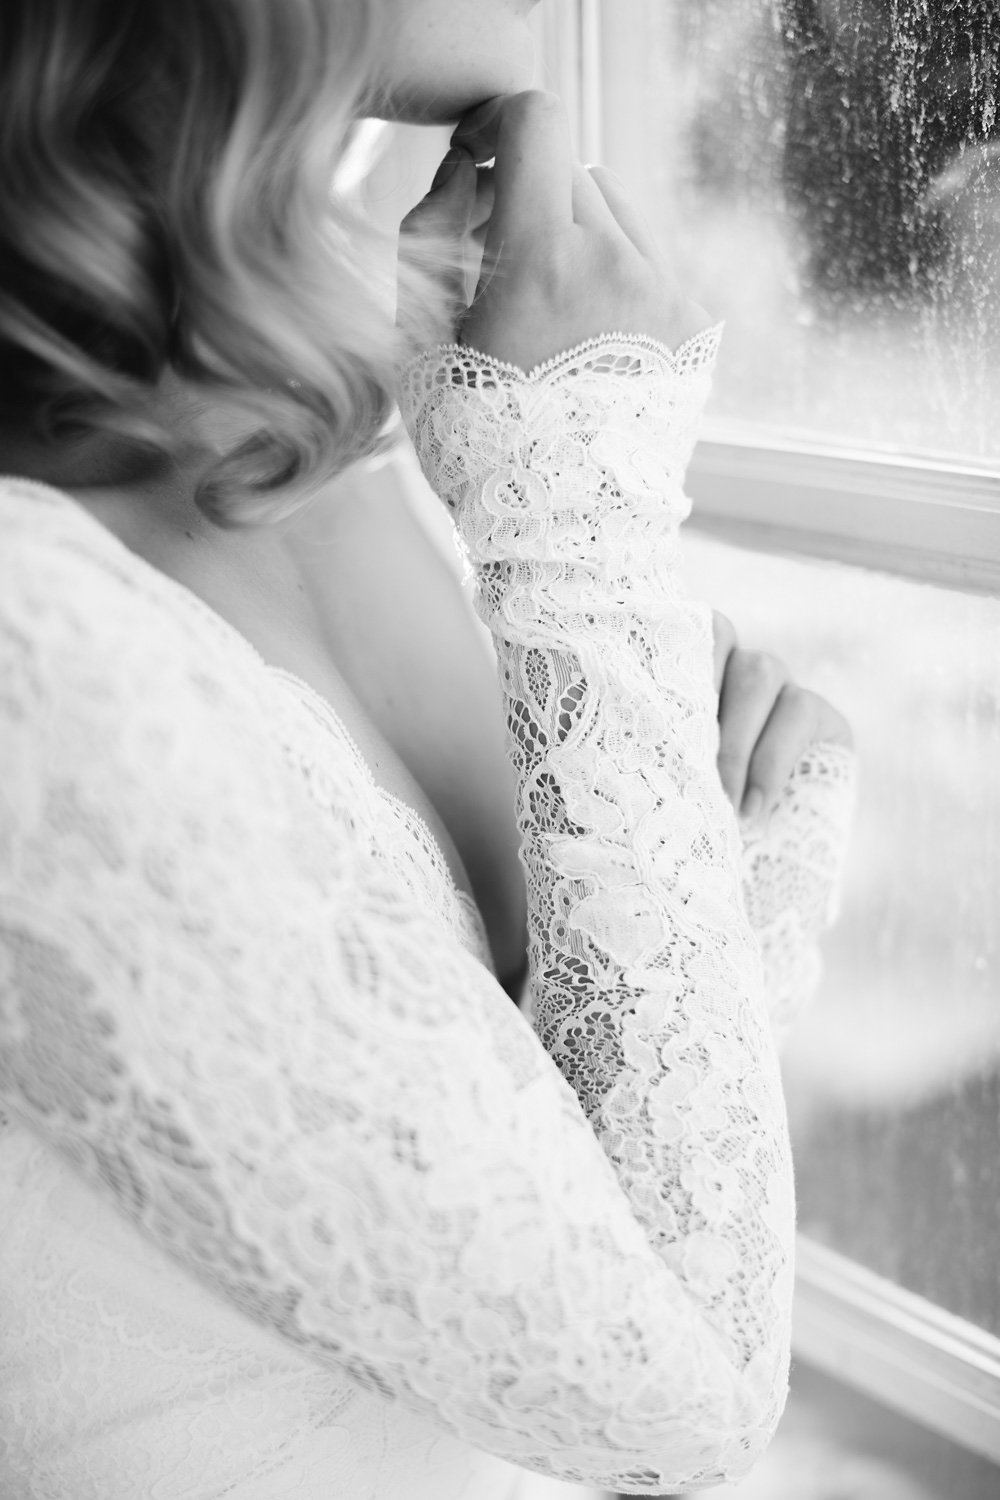 LowResCampbellPointHouseWeddingPhotography81.jpg